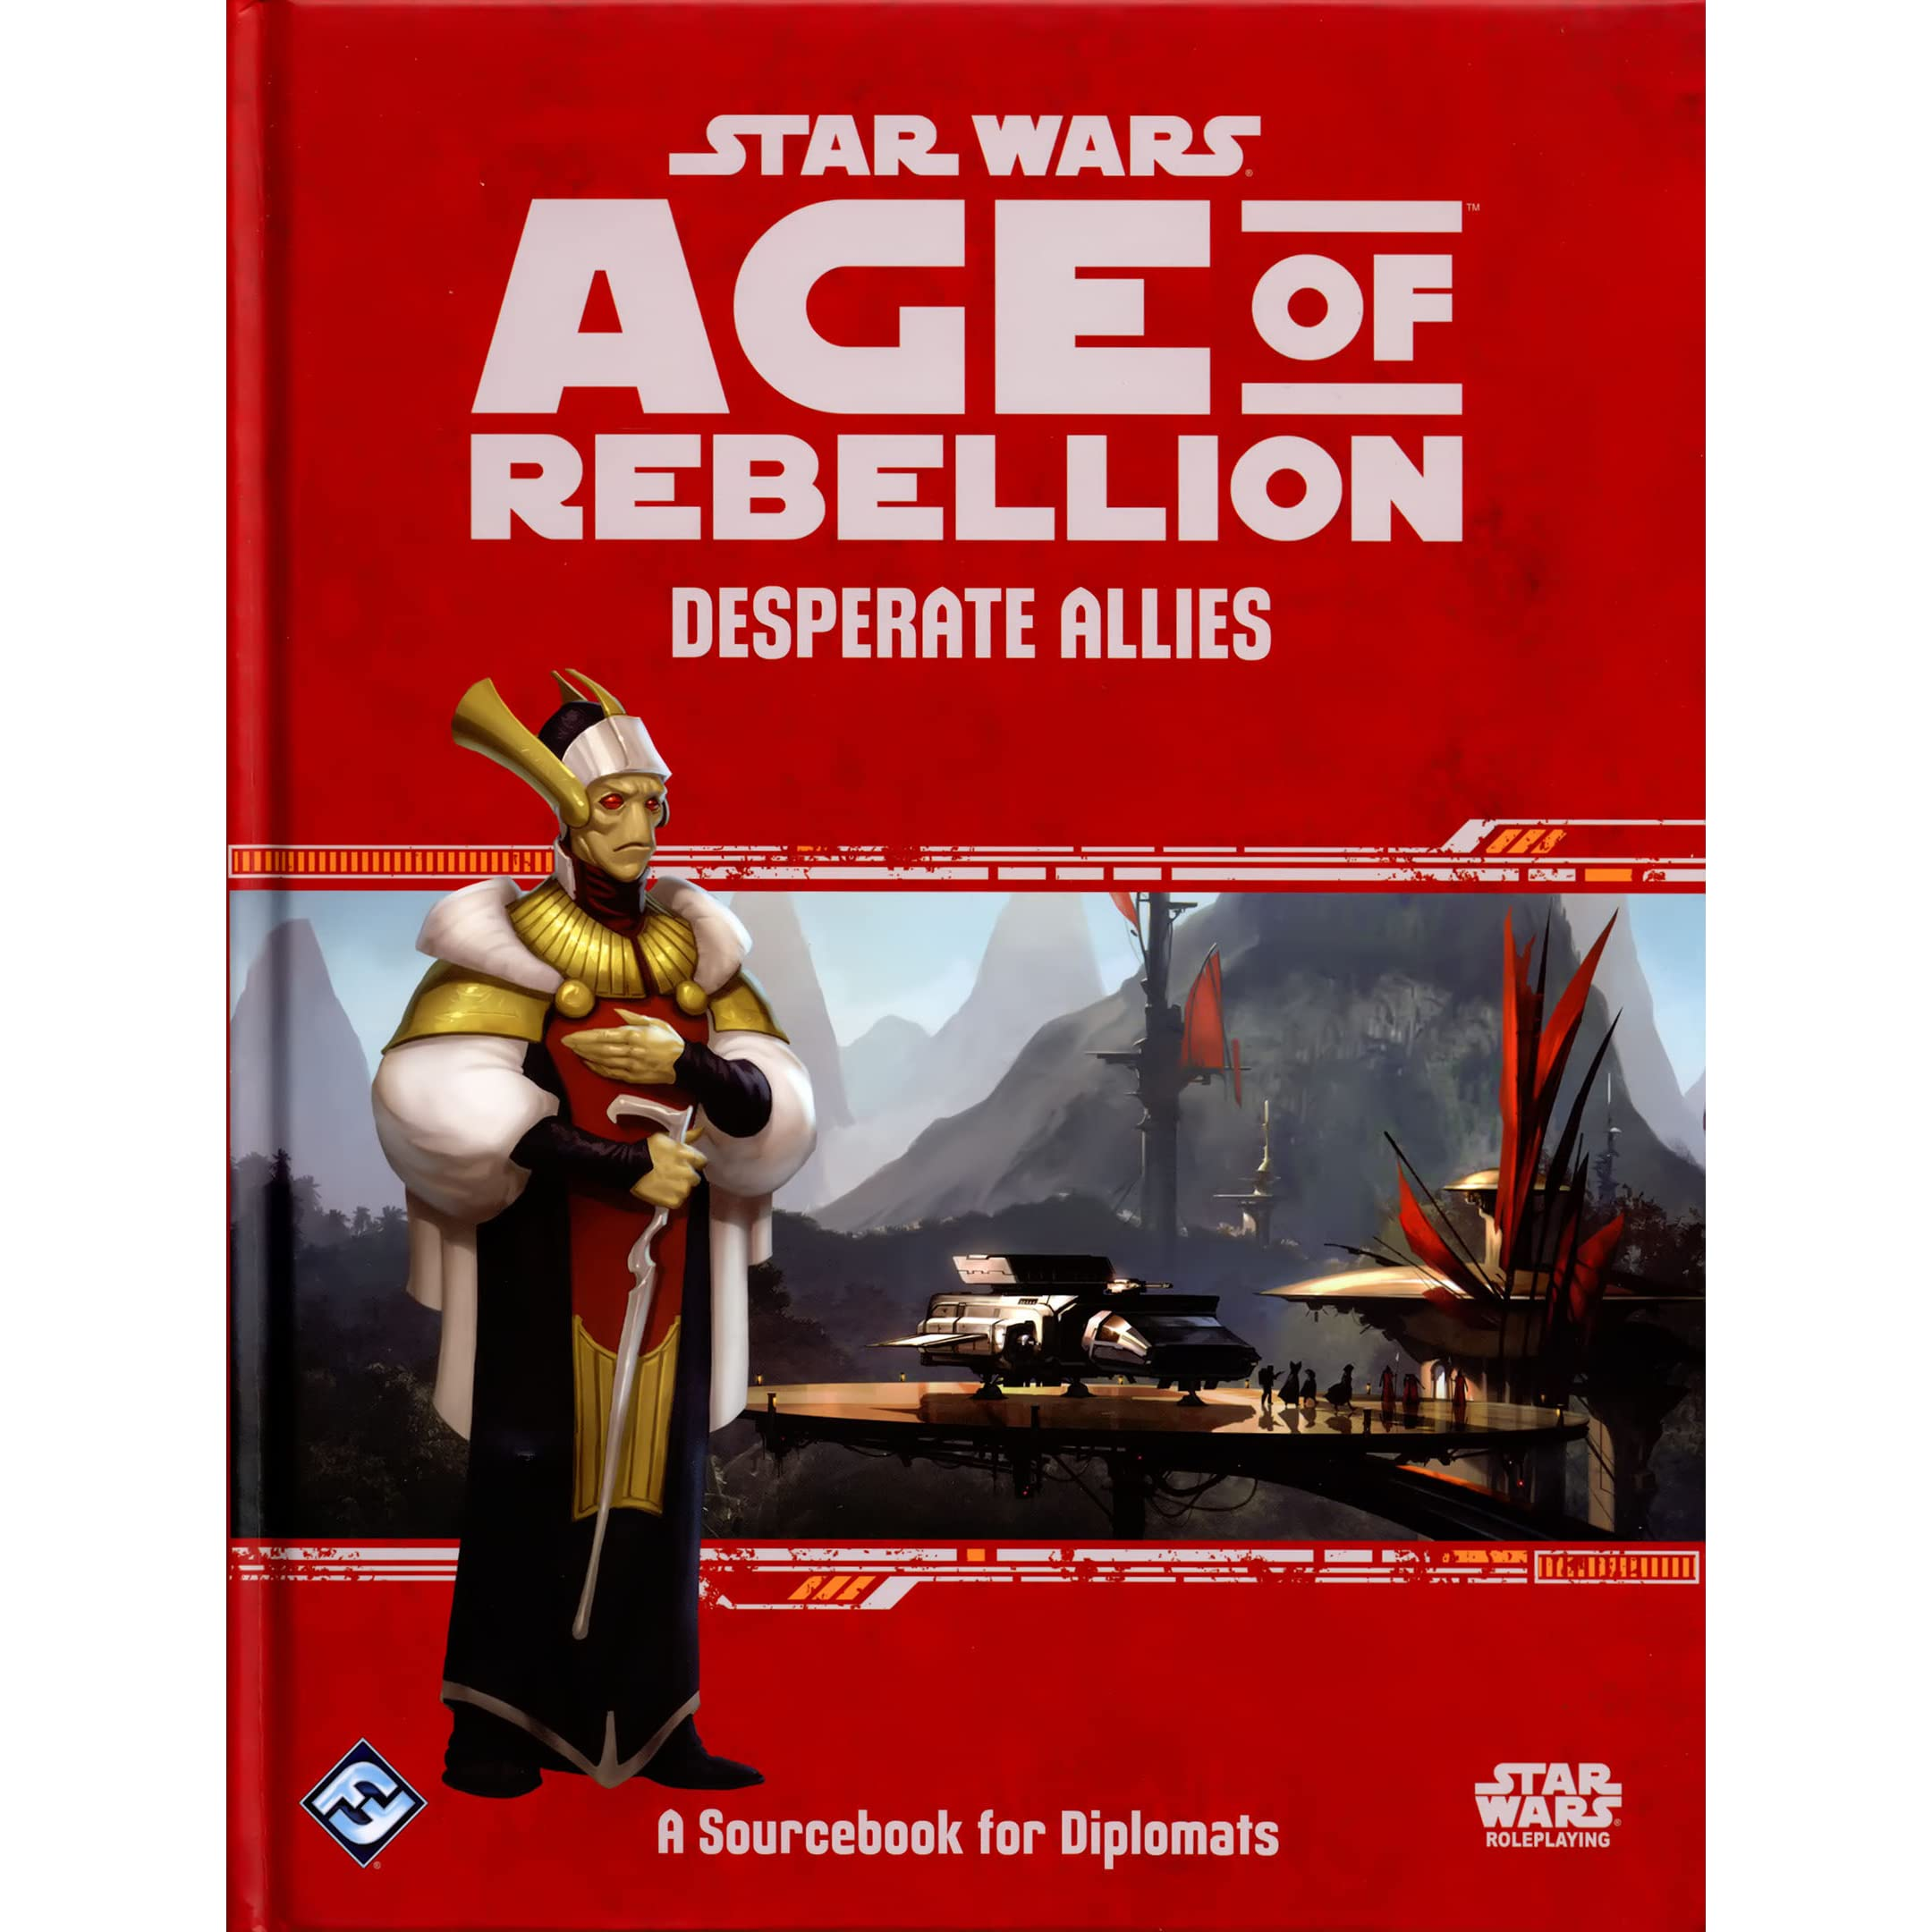 Star Wars Age of Rebellion: Desperate Allies